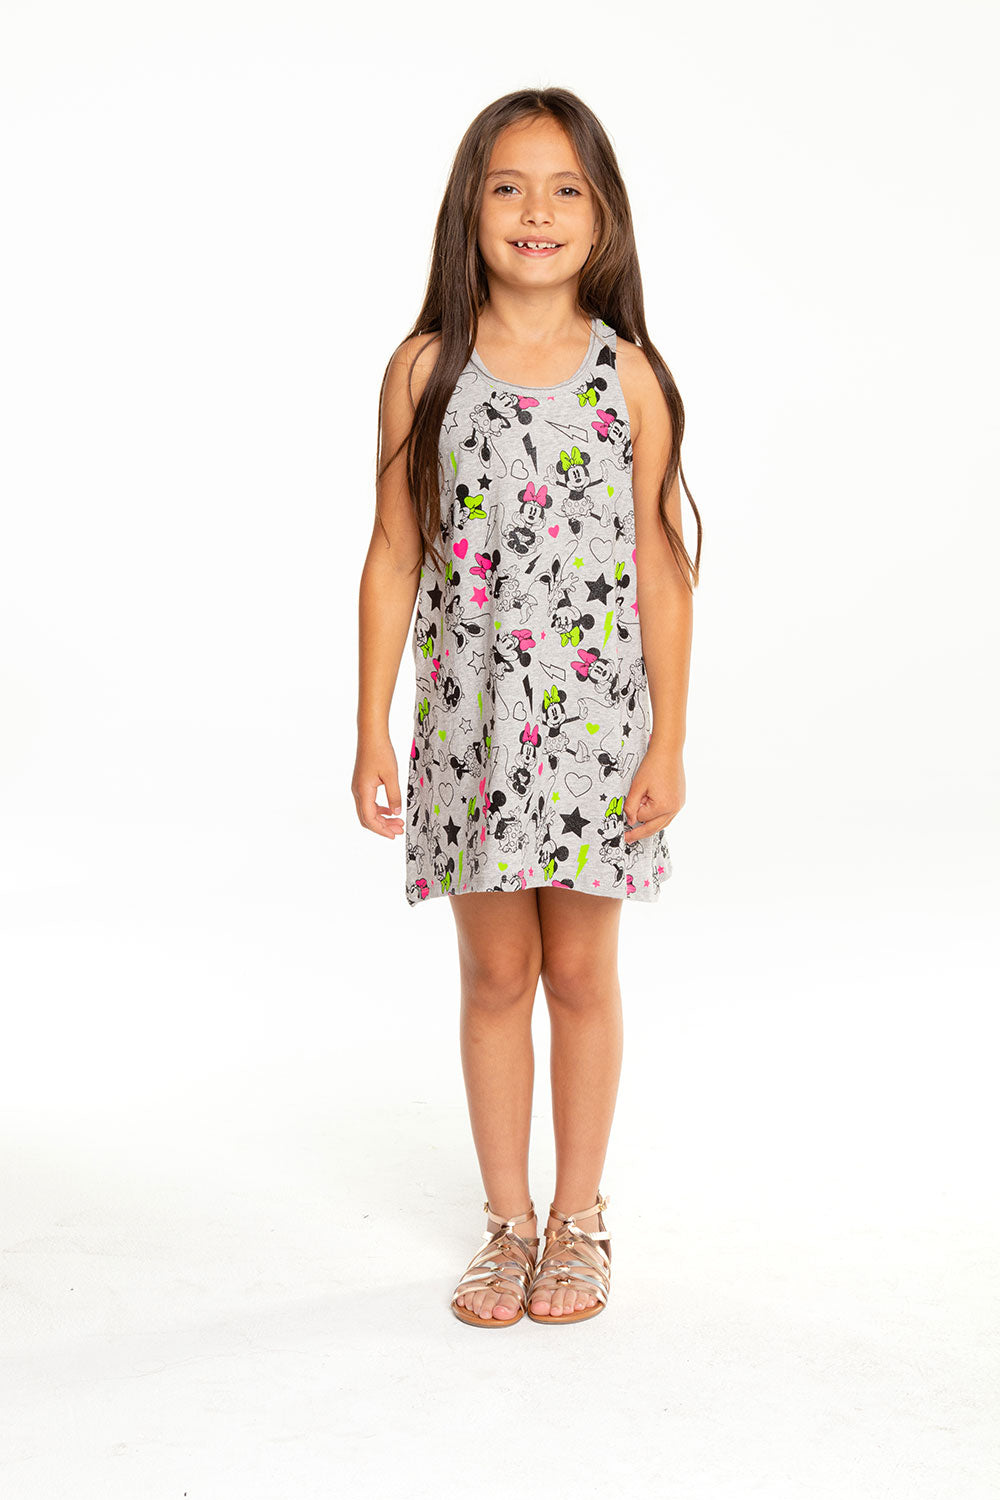 Disney's Minnie Mouse - Minnie All Over Dress GIRLS chaserbrand4.myshopify.com